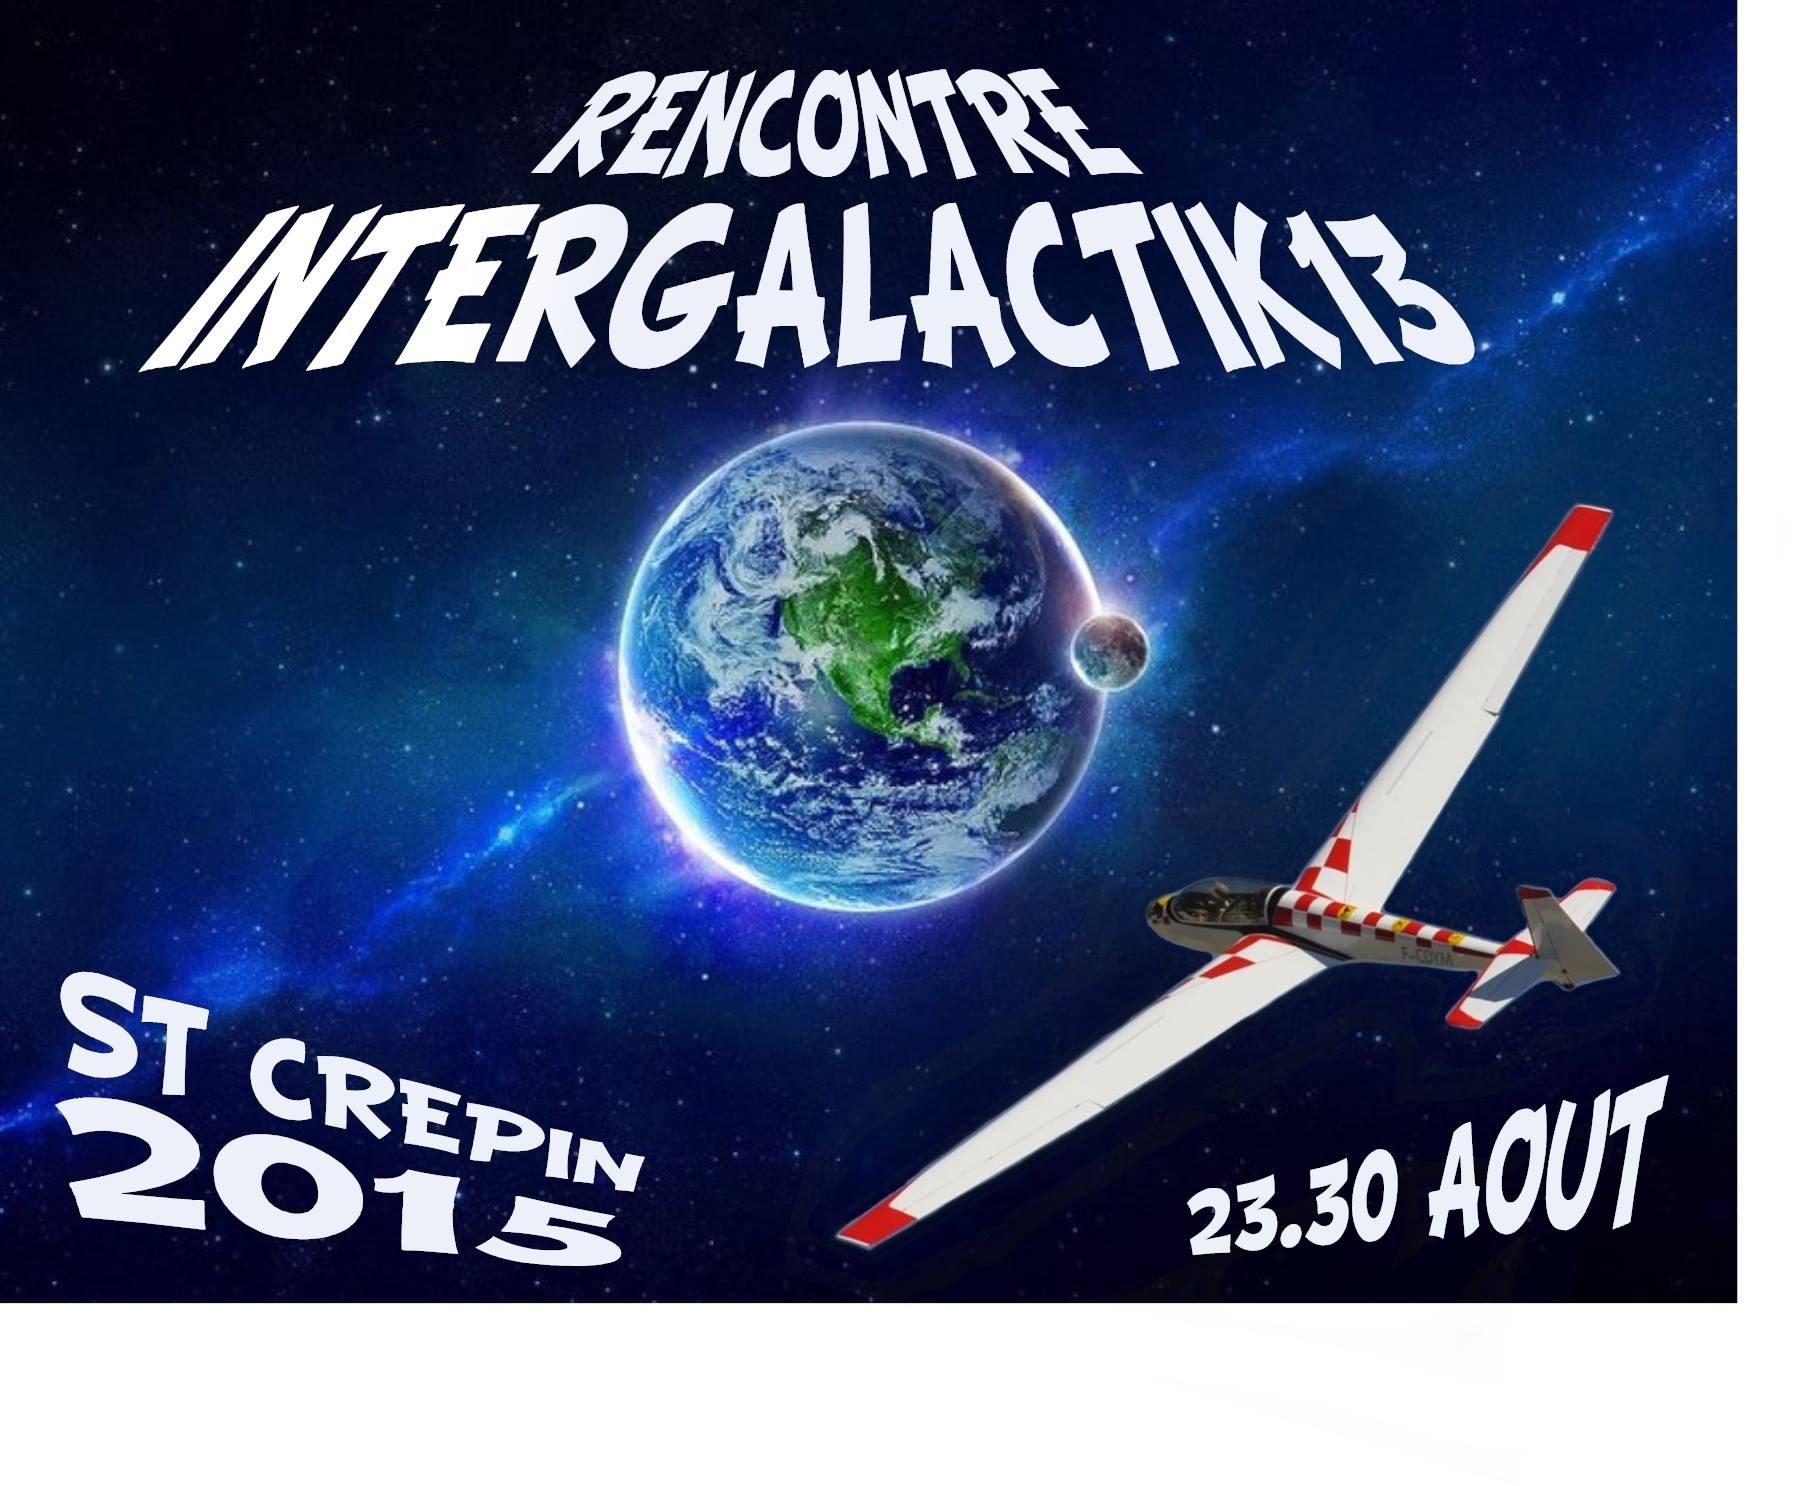 rencontre ask13 2015